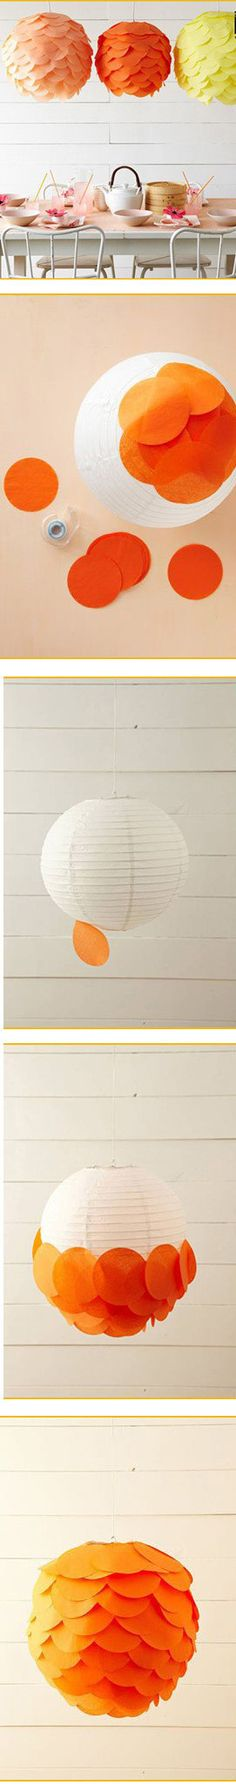 How to make a colorful paper lantern